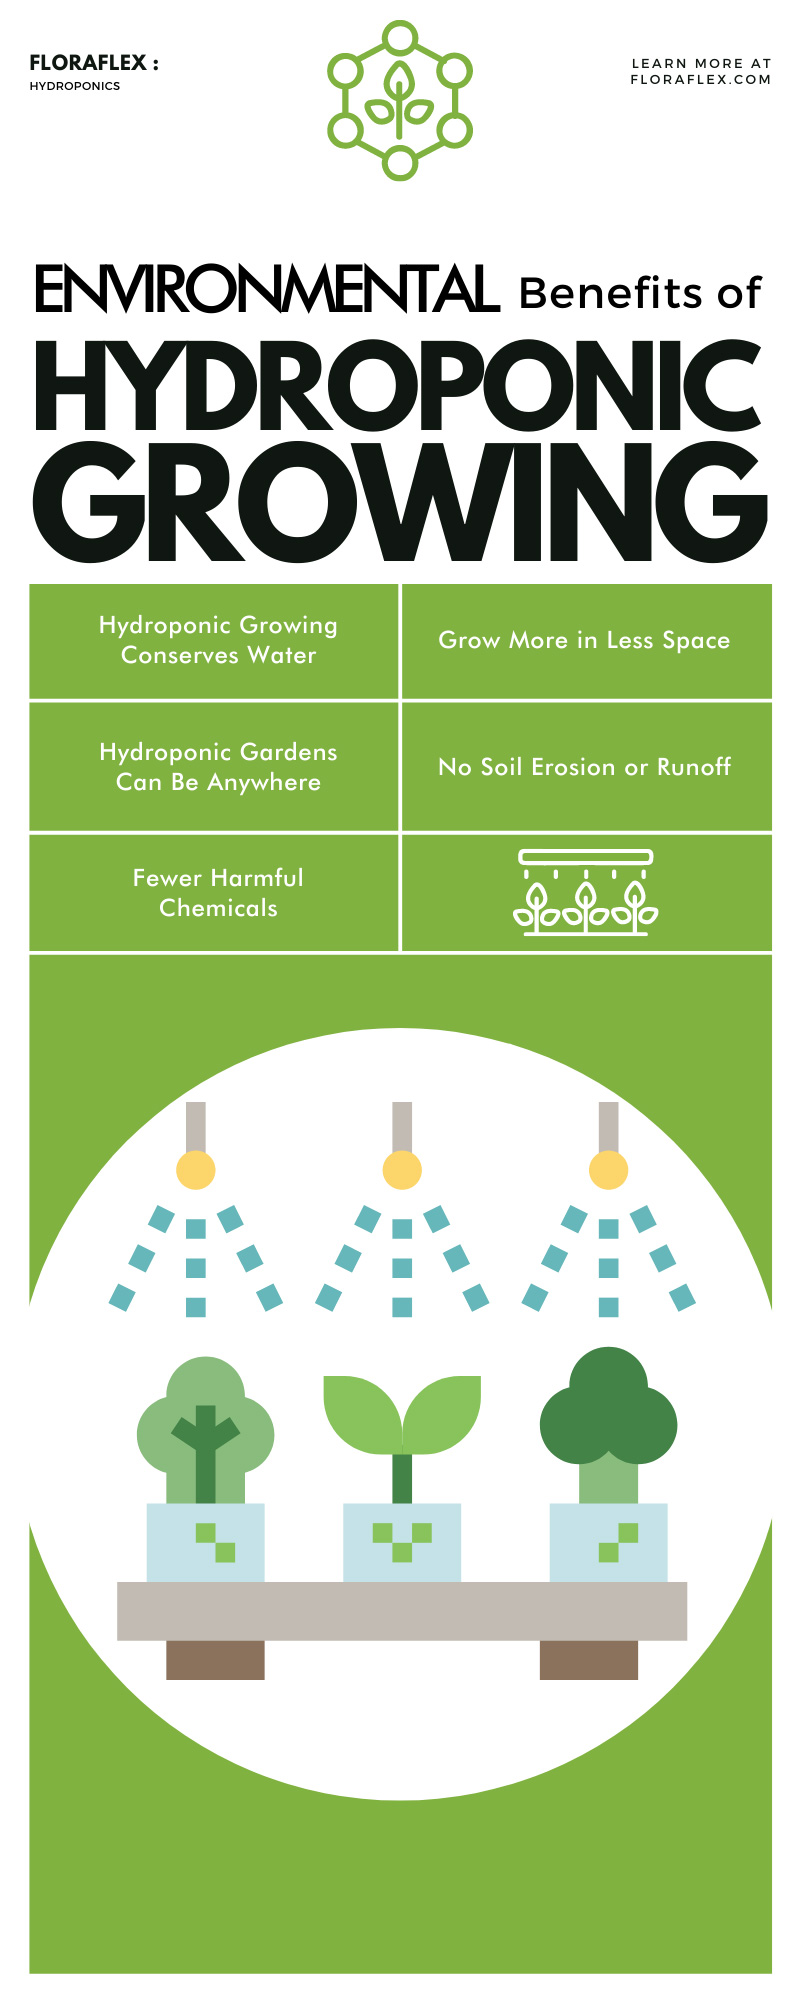 Environmental Benefits of Hydroponic Growing